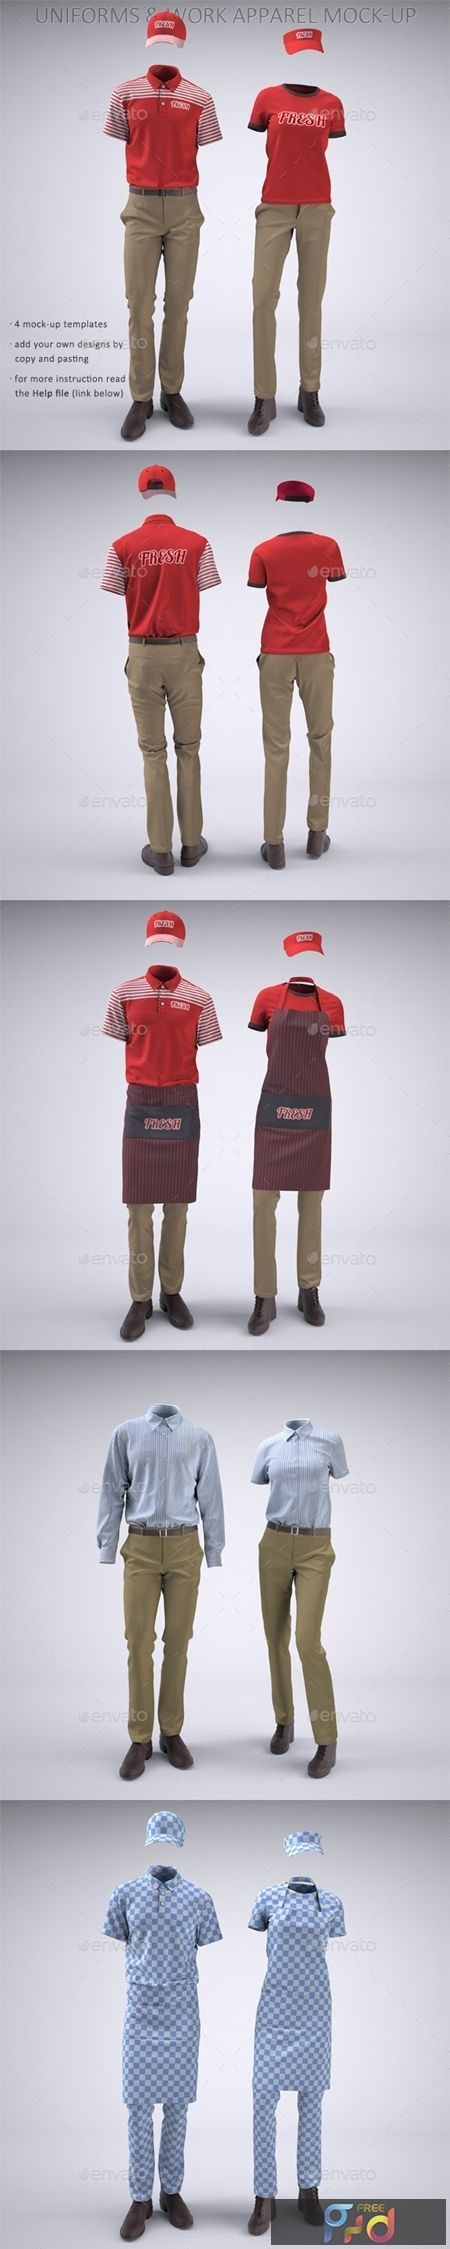 Yellow images is an online marketplace of unique object mockups for branding and packaging design, and a. Food Service Uniforms And Retail Uniforms Mock Up 22094416 Freepsdvn In 2021 Clothing Mockup Food Service Uniforms Clothing Templates